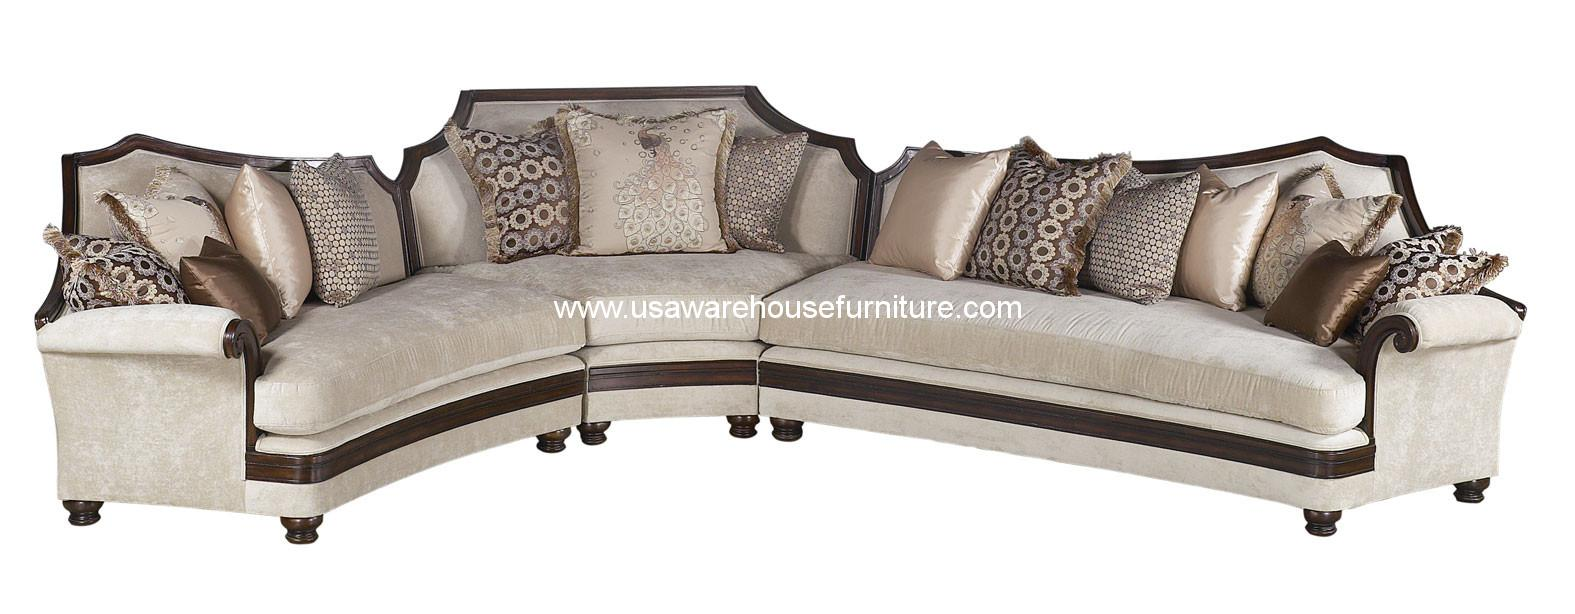 divani corner sofa leather casa art product angolo sectional with l rodus rounded furniture trim wood